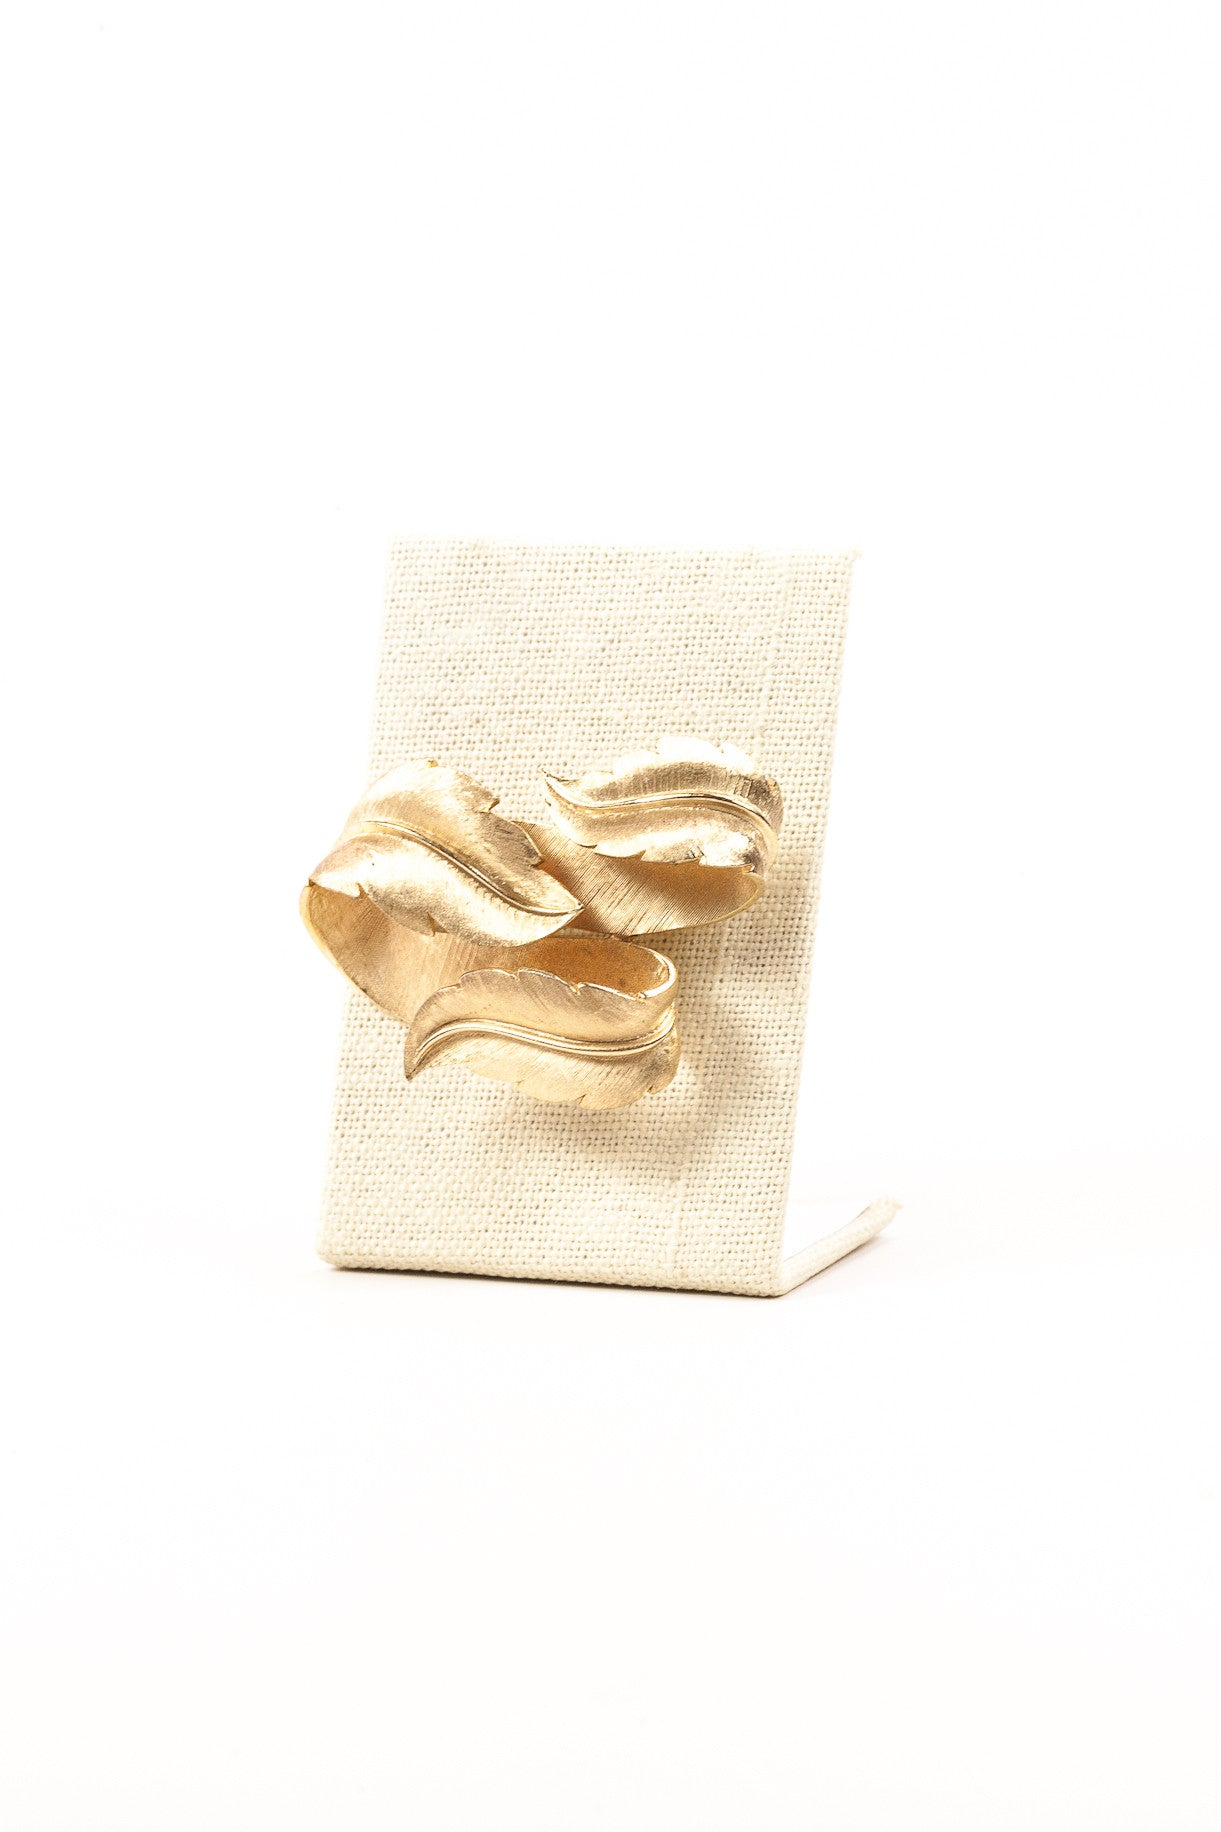 60's__Trifari__Gold Swirl Brooch